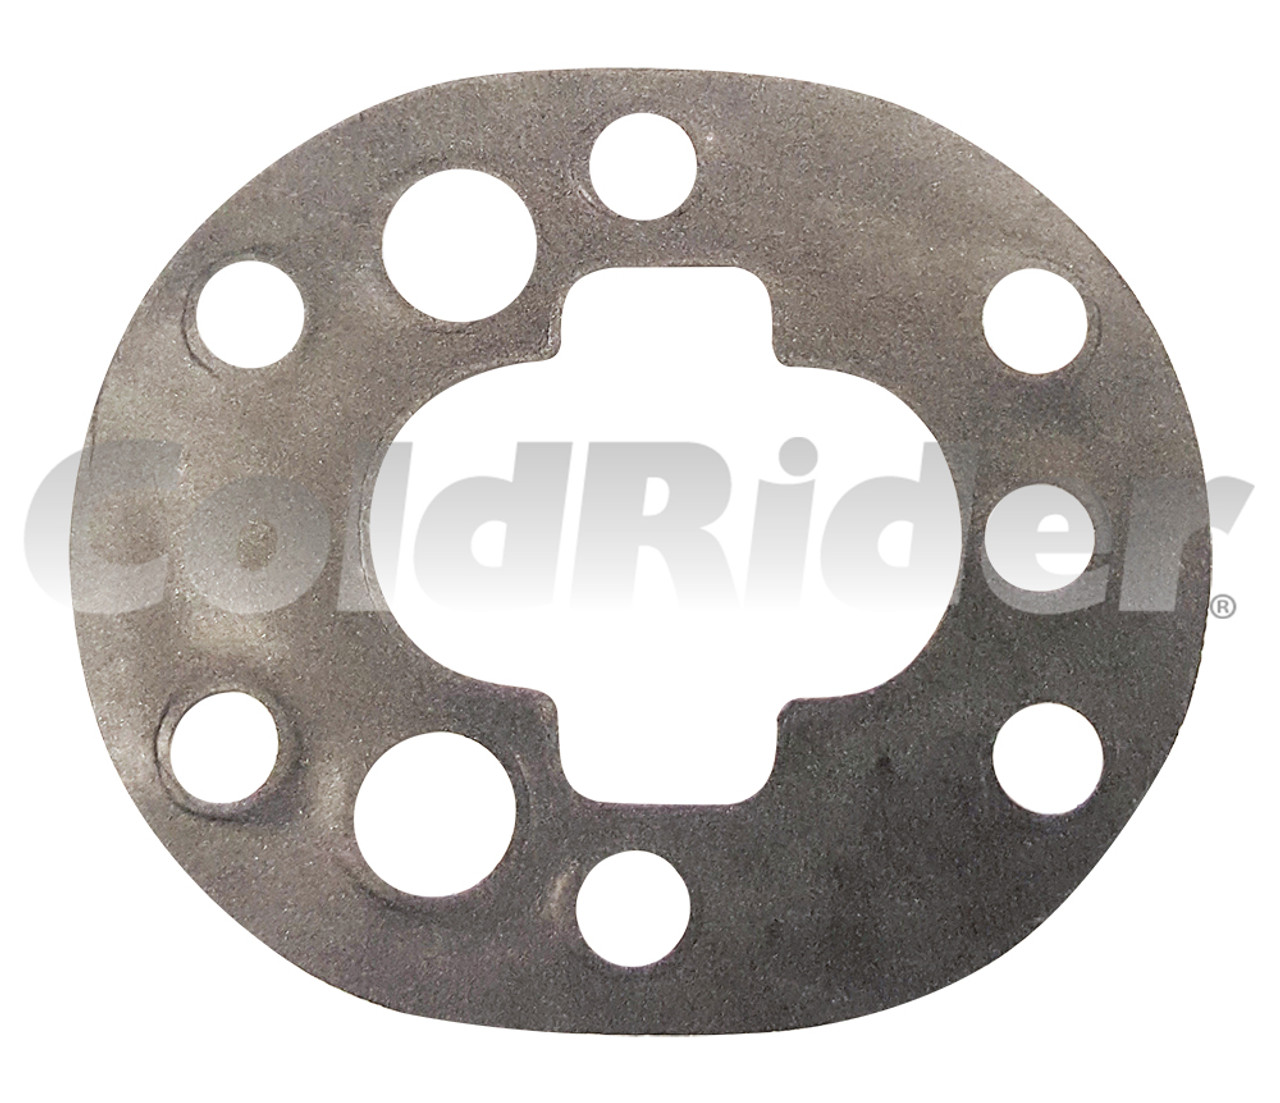 S-33-737 Oil Sump Cover Gasket for Thermo King